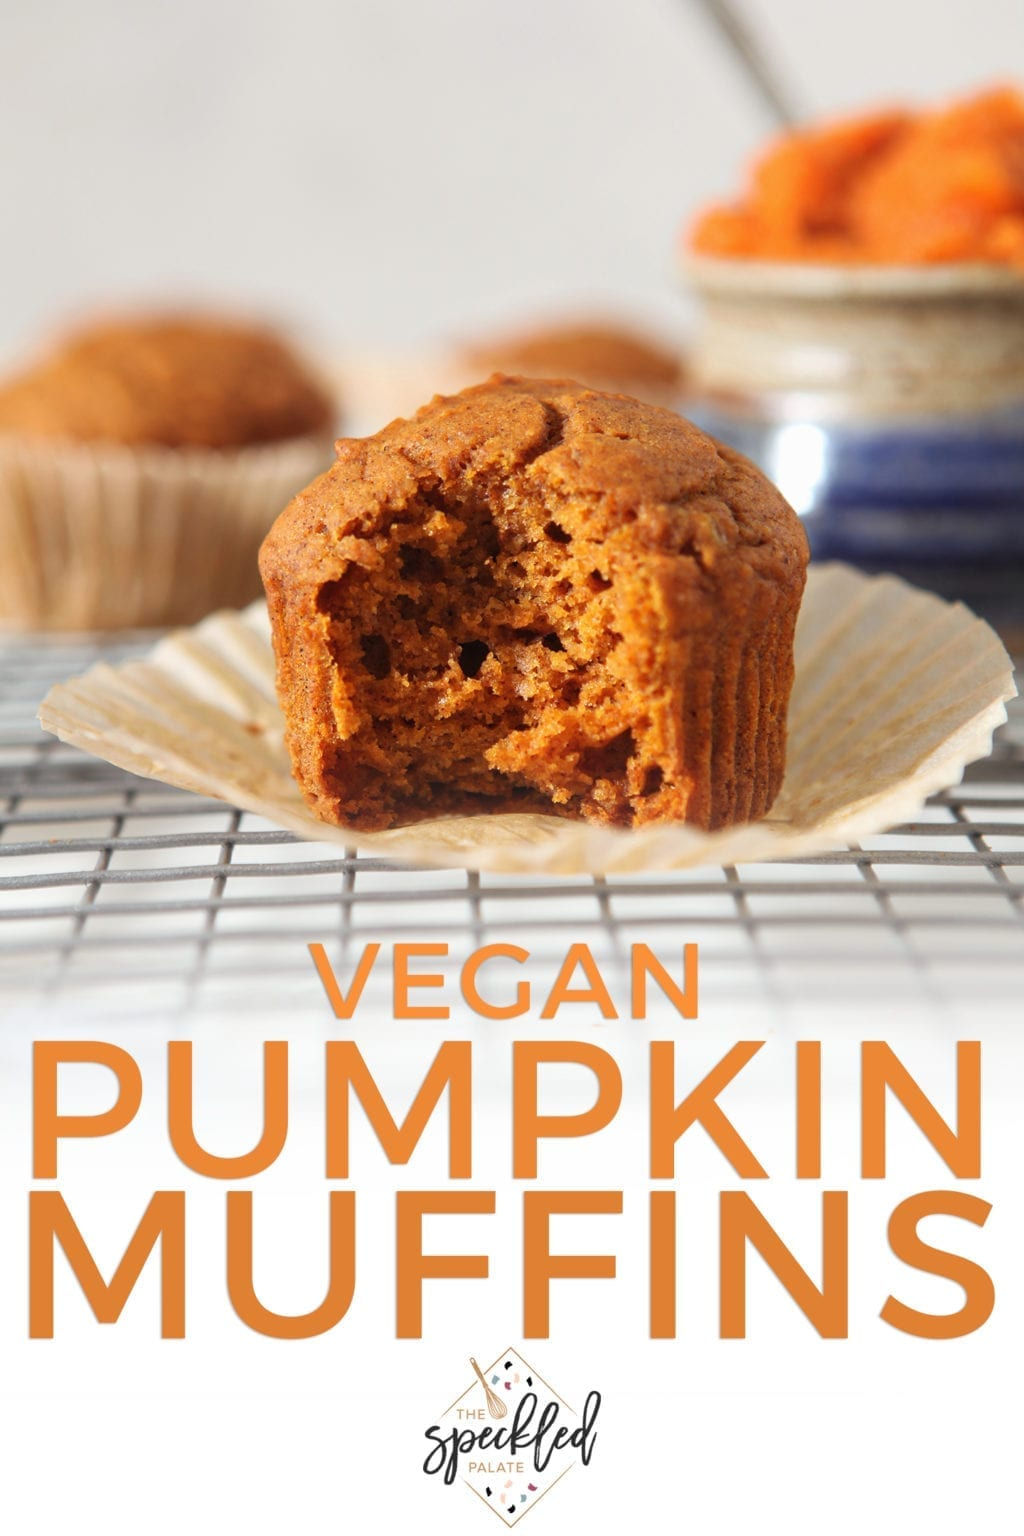 Close up of a Vegan Pumpkin Muffin on a cooling rack, with text